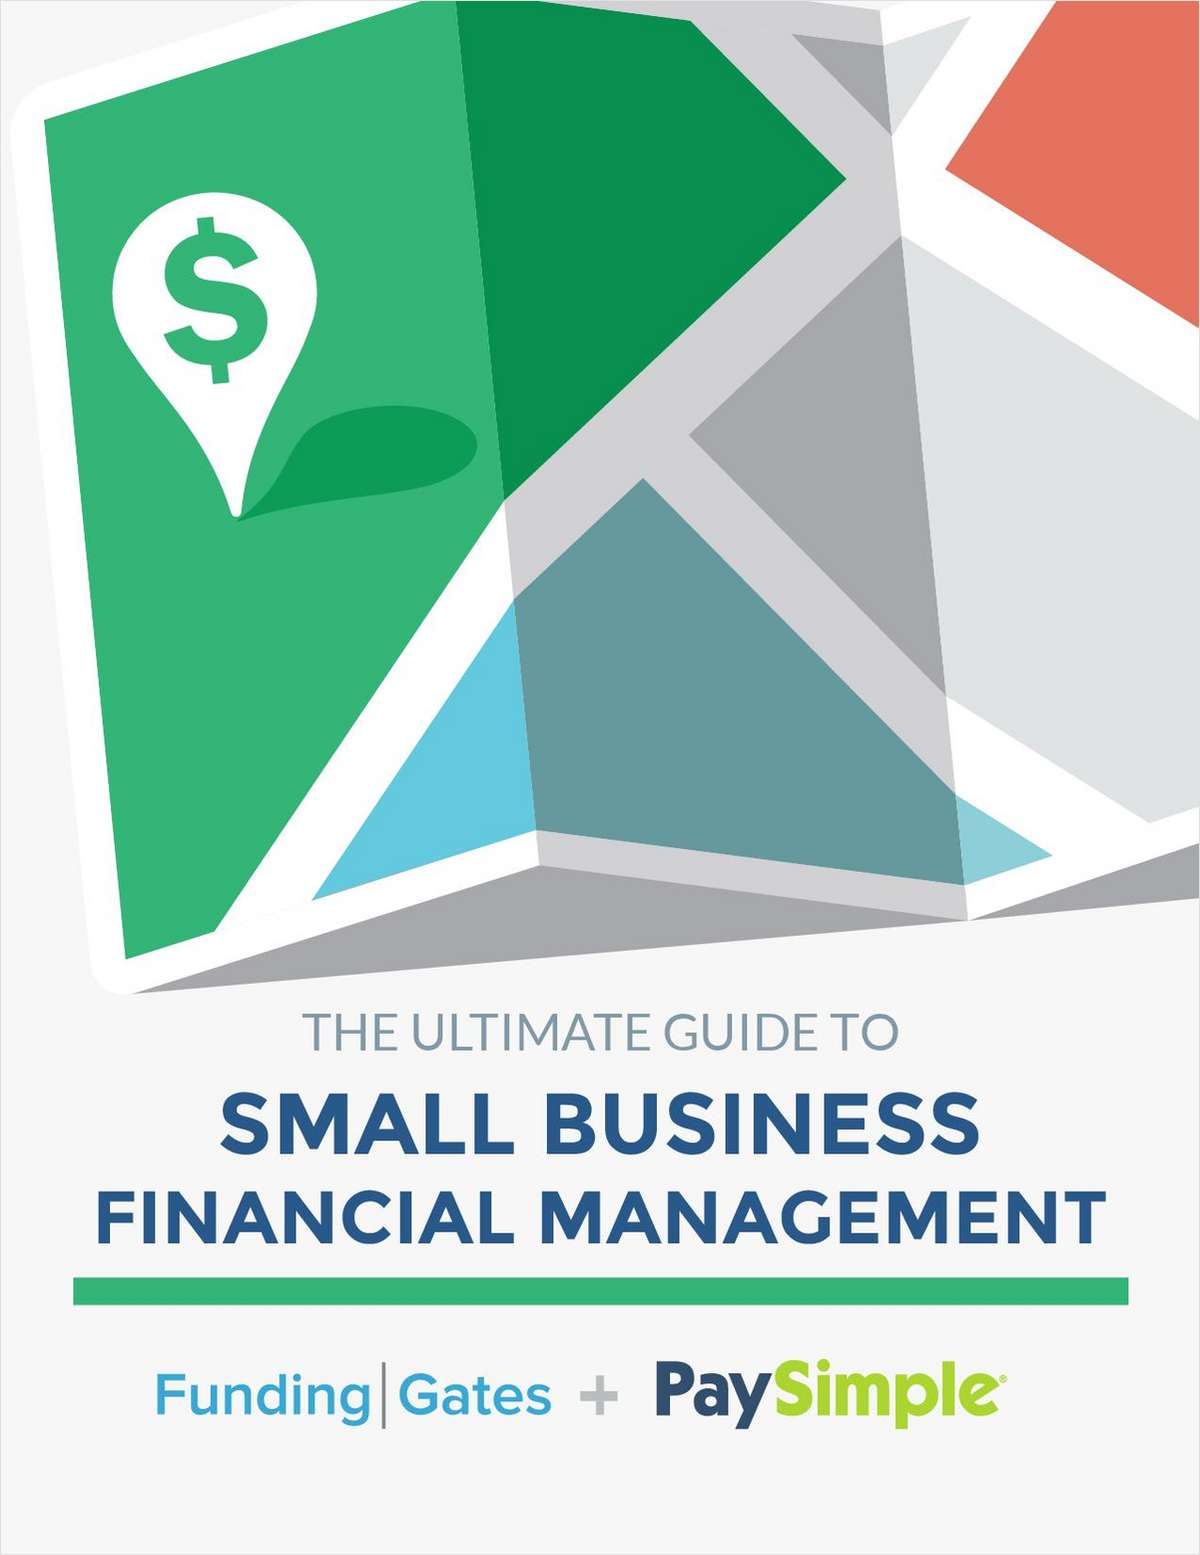 The Ultimate Guide to Small Business Financial Management